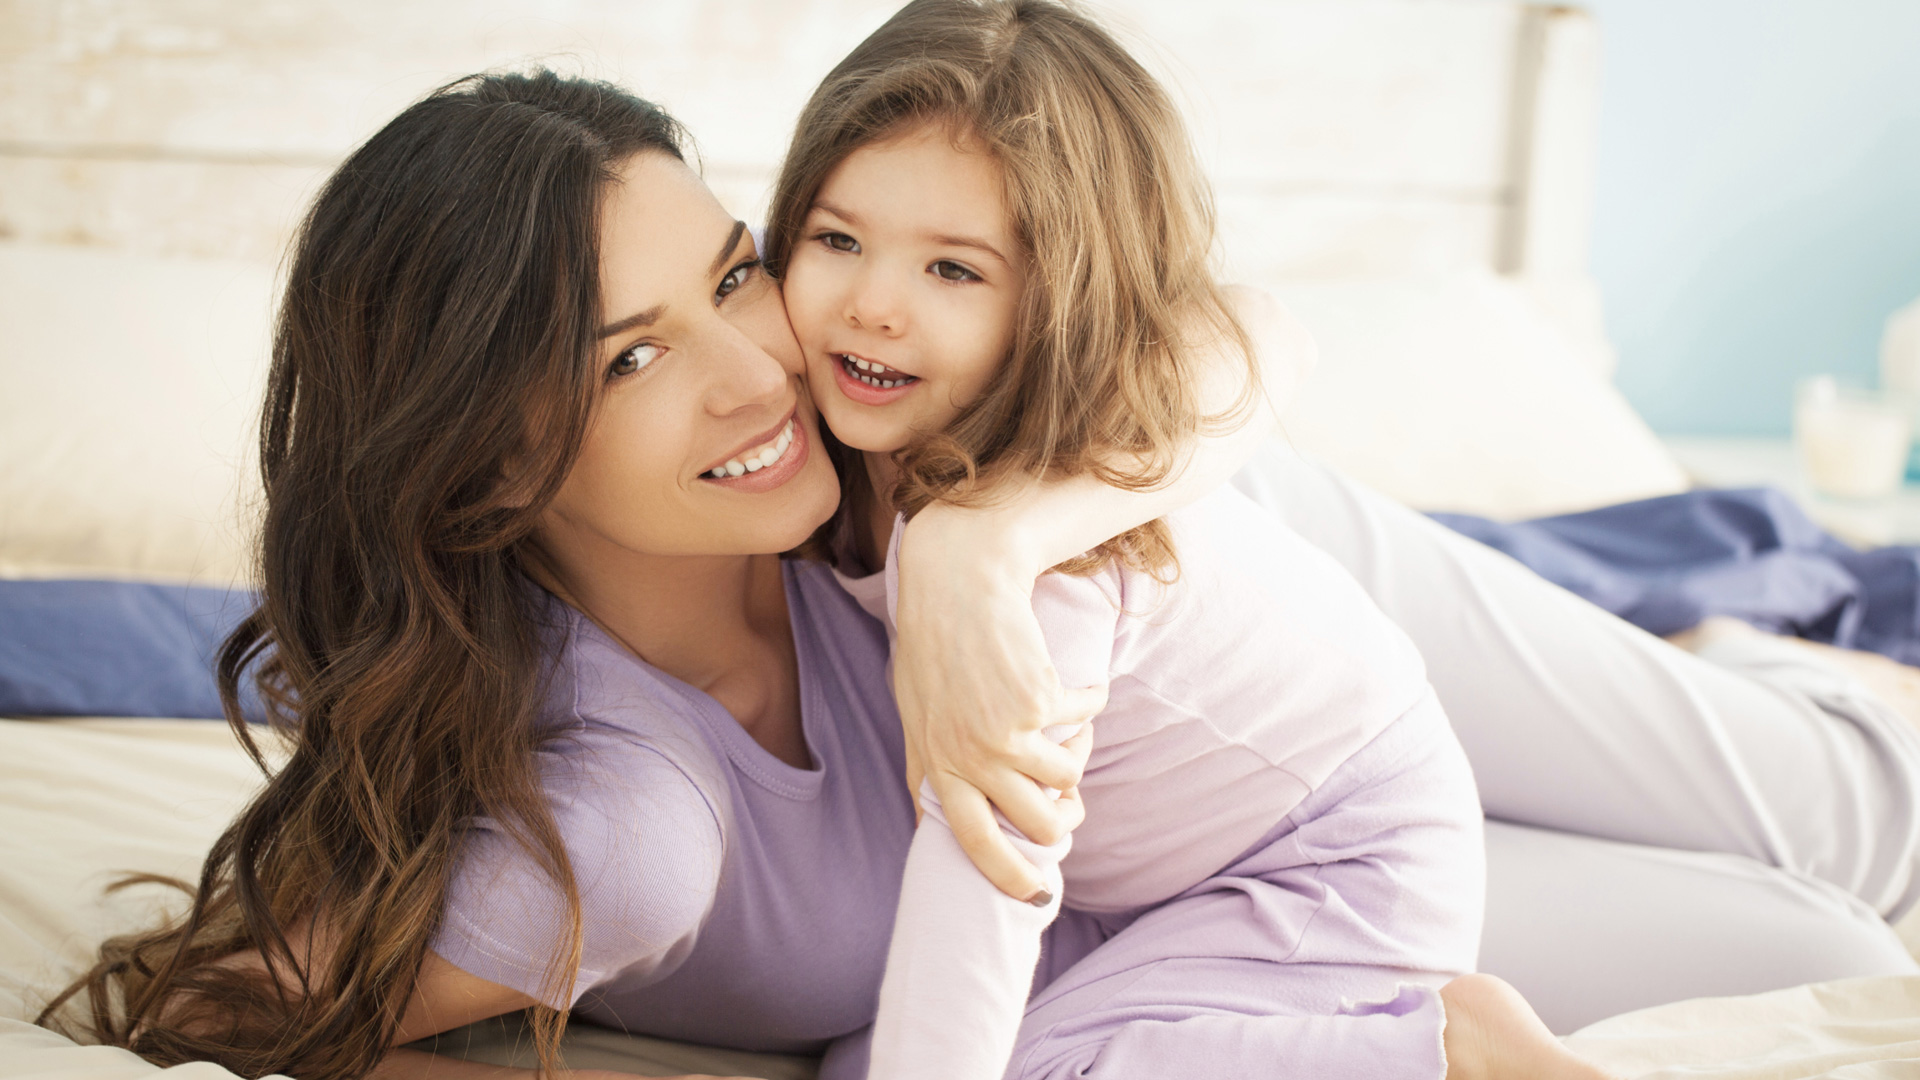 moms-need-self-esteem-powerful-ways-to-give-them-dailyfamily.ng